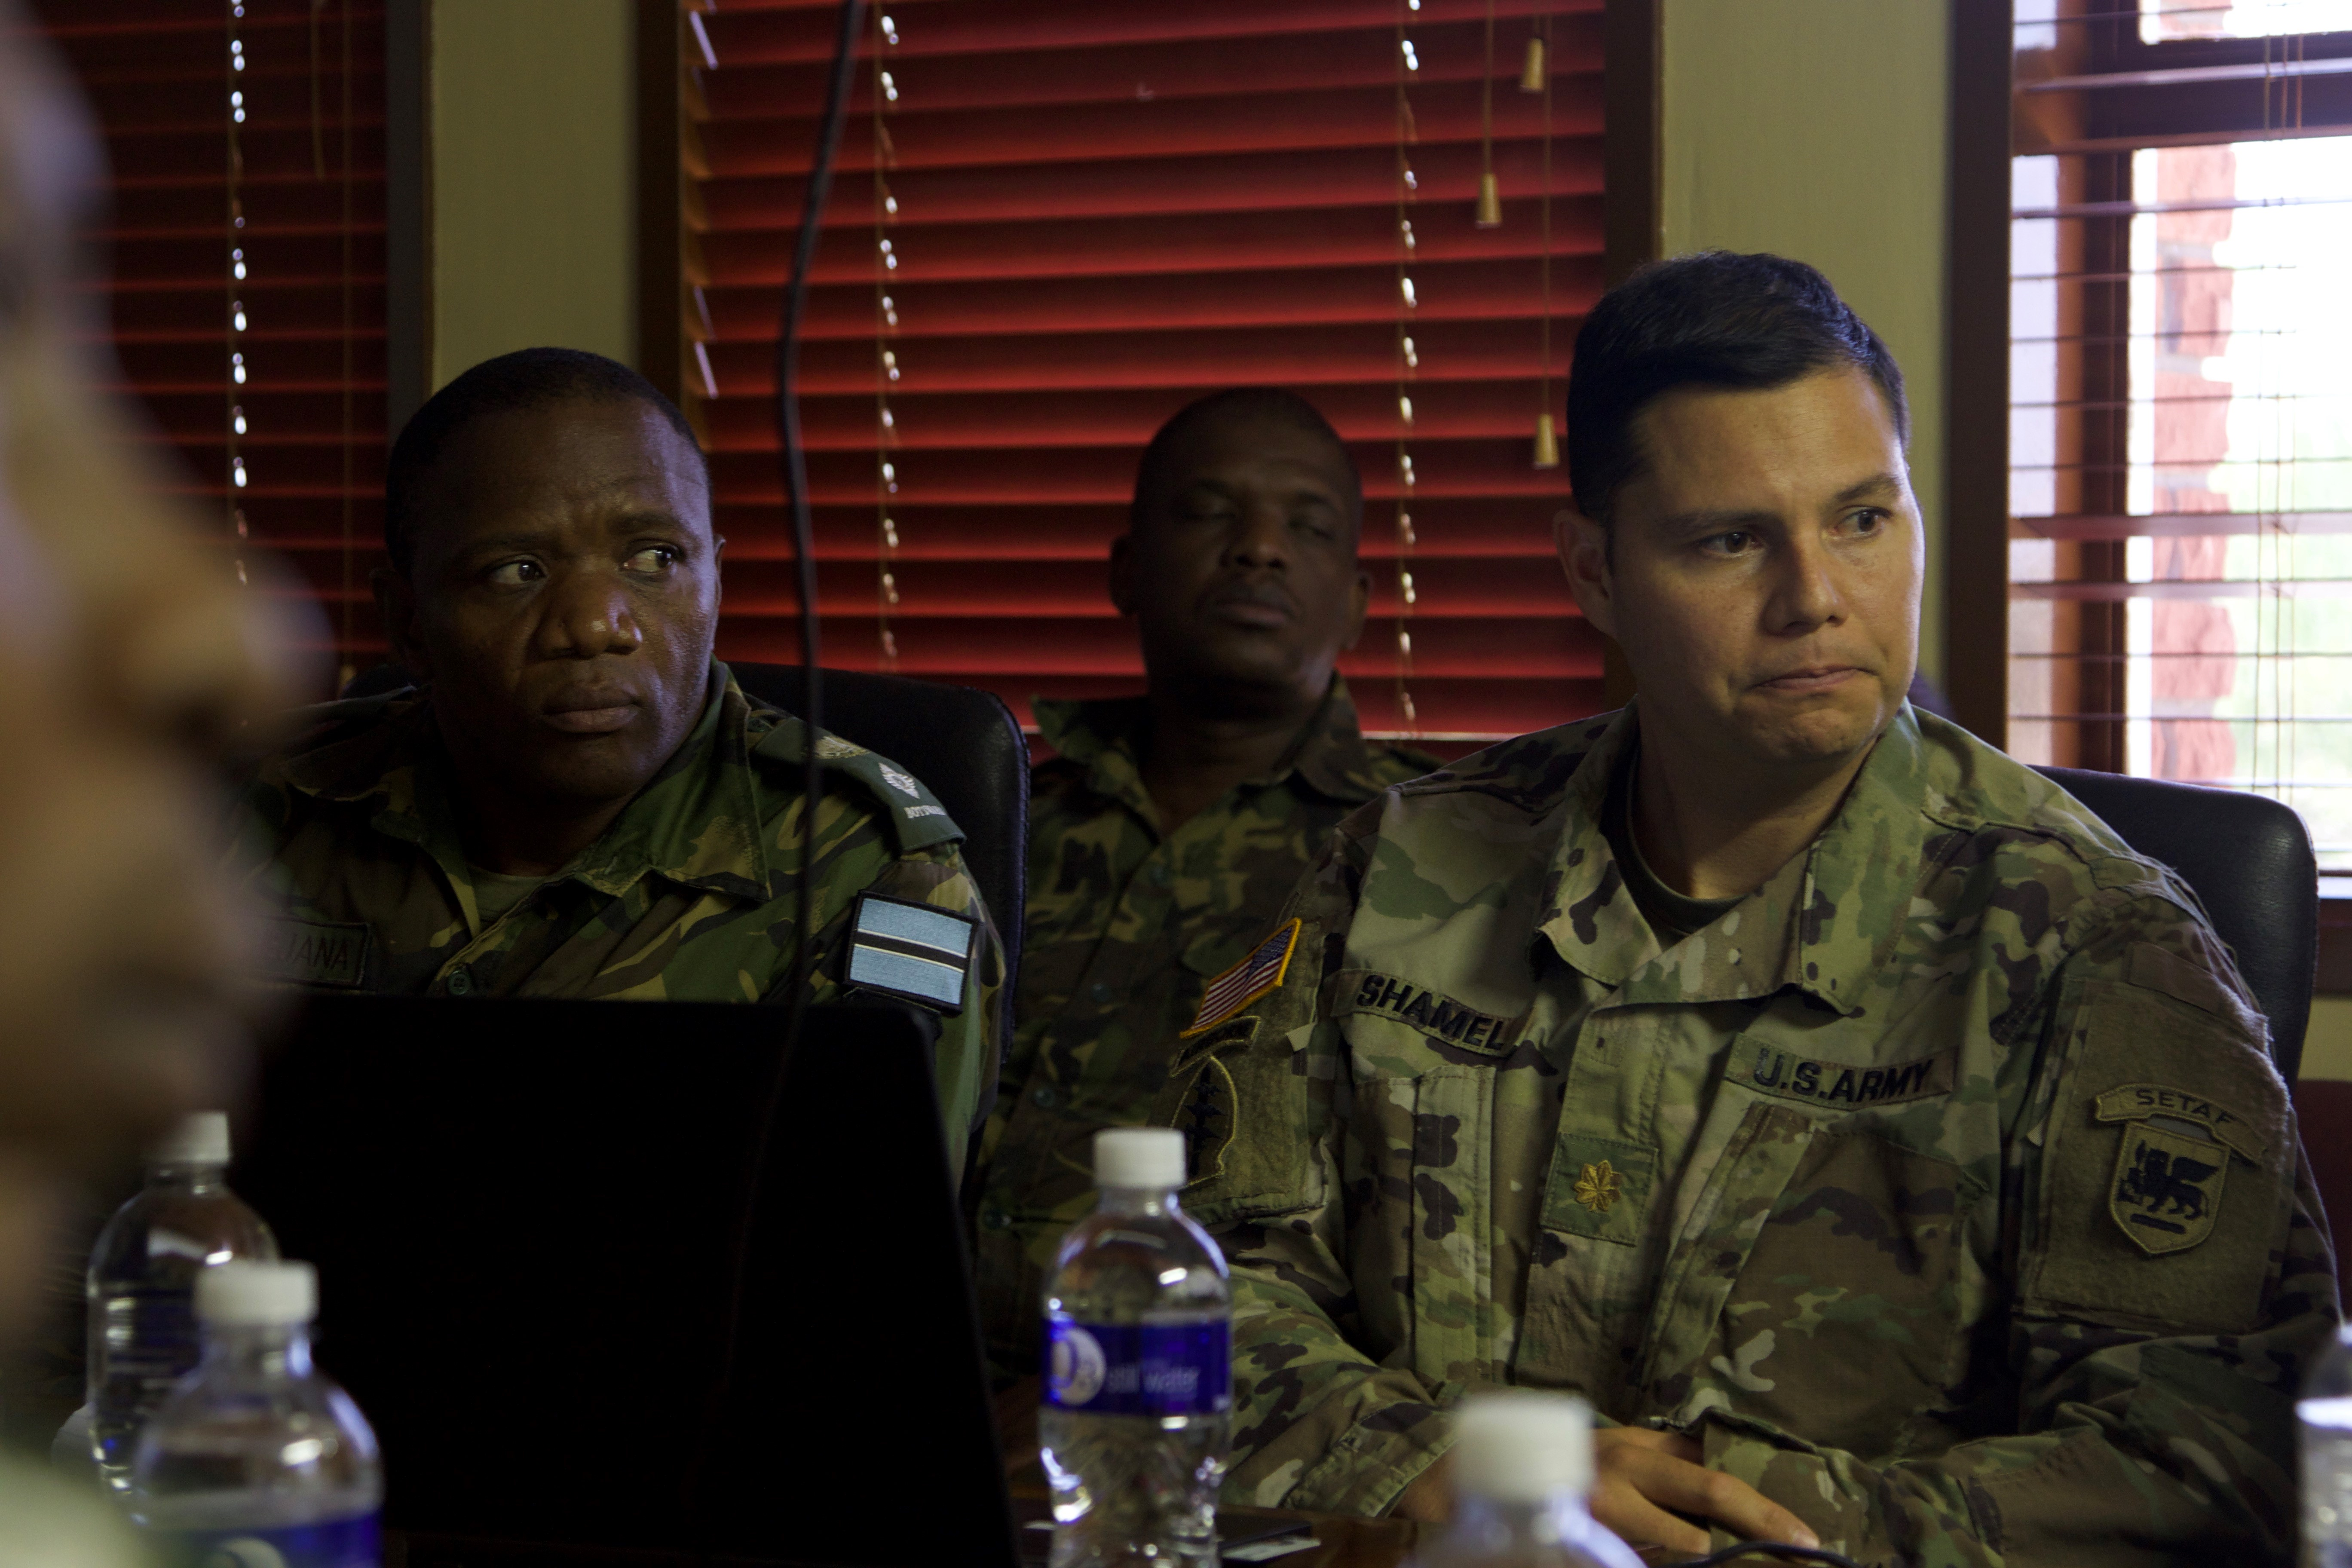 GABORONE, Botswana--Maj. Teremurra Shamel, the U.S. Army Africa Land Forces Summit lead planner, and lt. Col. BC Phejana, the Botswana Ground Forces Command ALFS lead planner, brief the Botswana GFC Commander Oct. 26, 2018, in Gaborone, Botswana. ALFS in an annual seminar attended by land force chiefs across Africa, where service leaders discuss common challenges and share best practices.